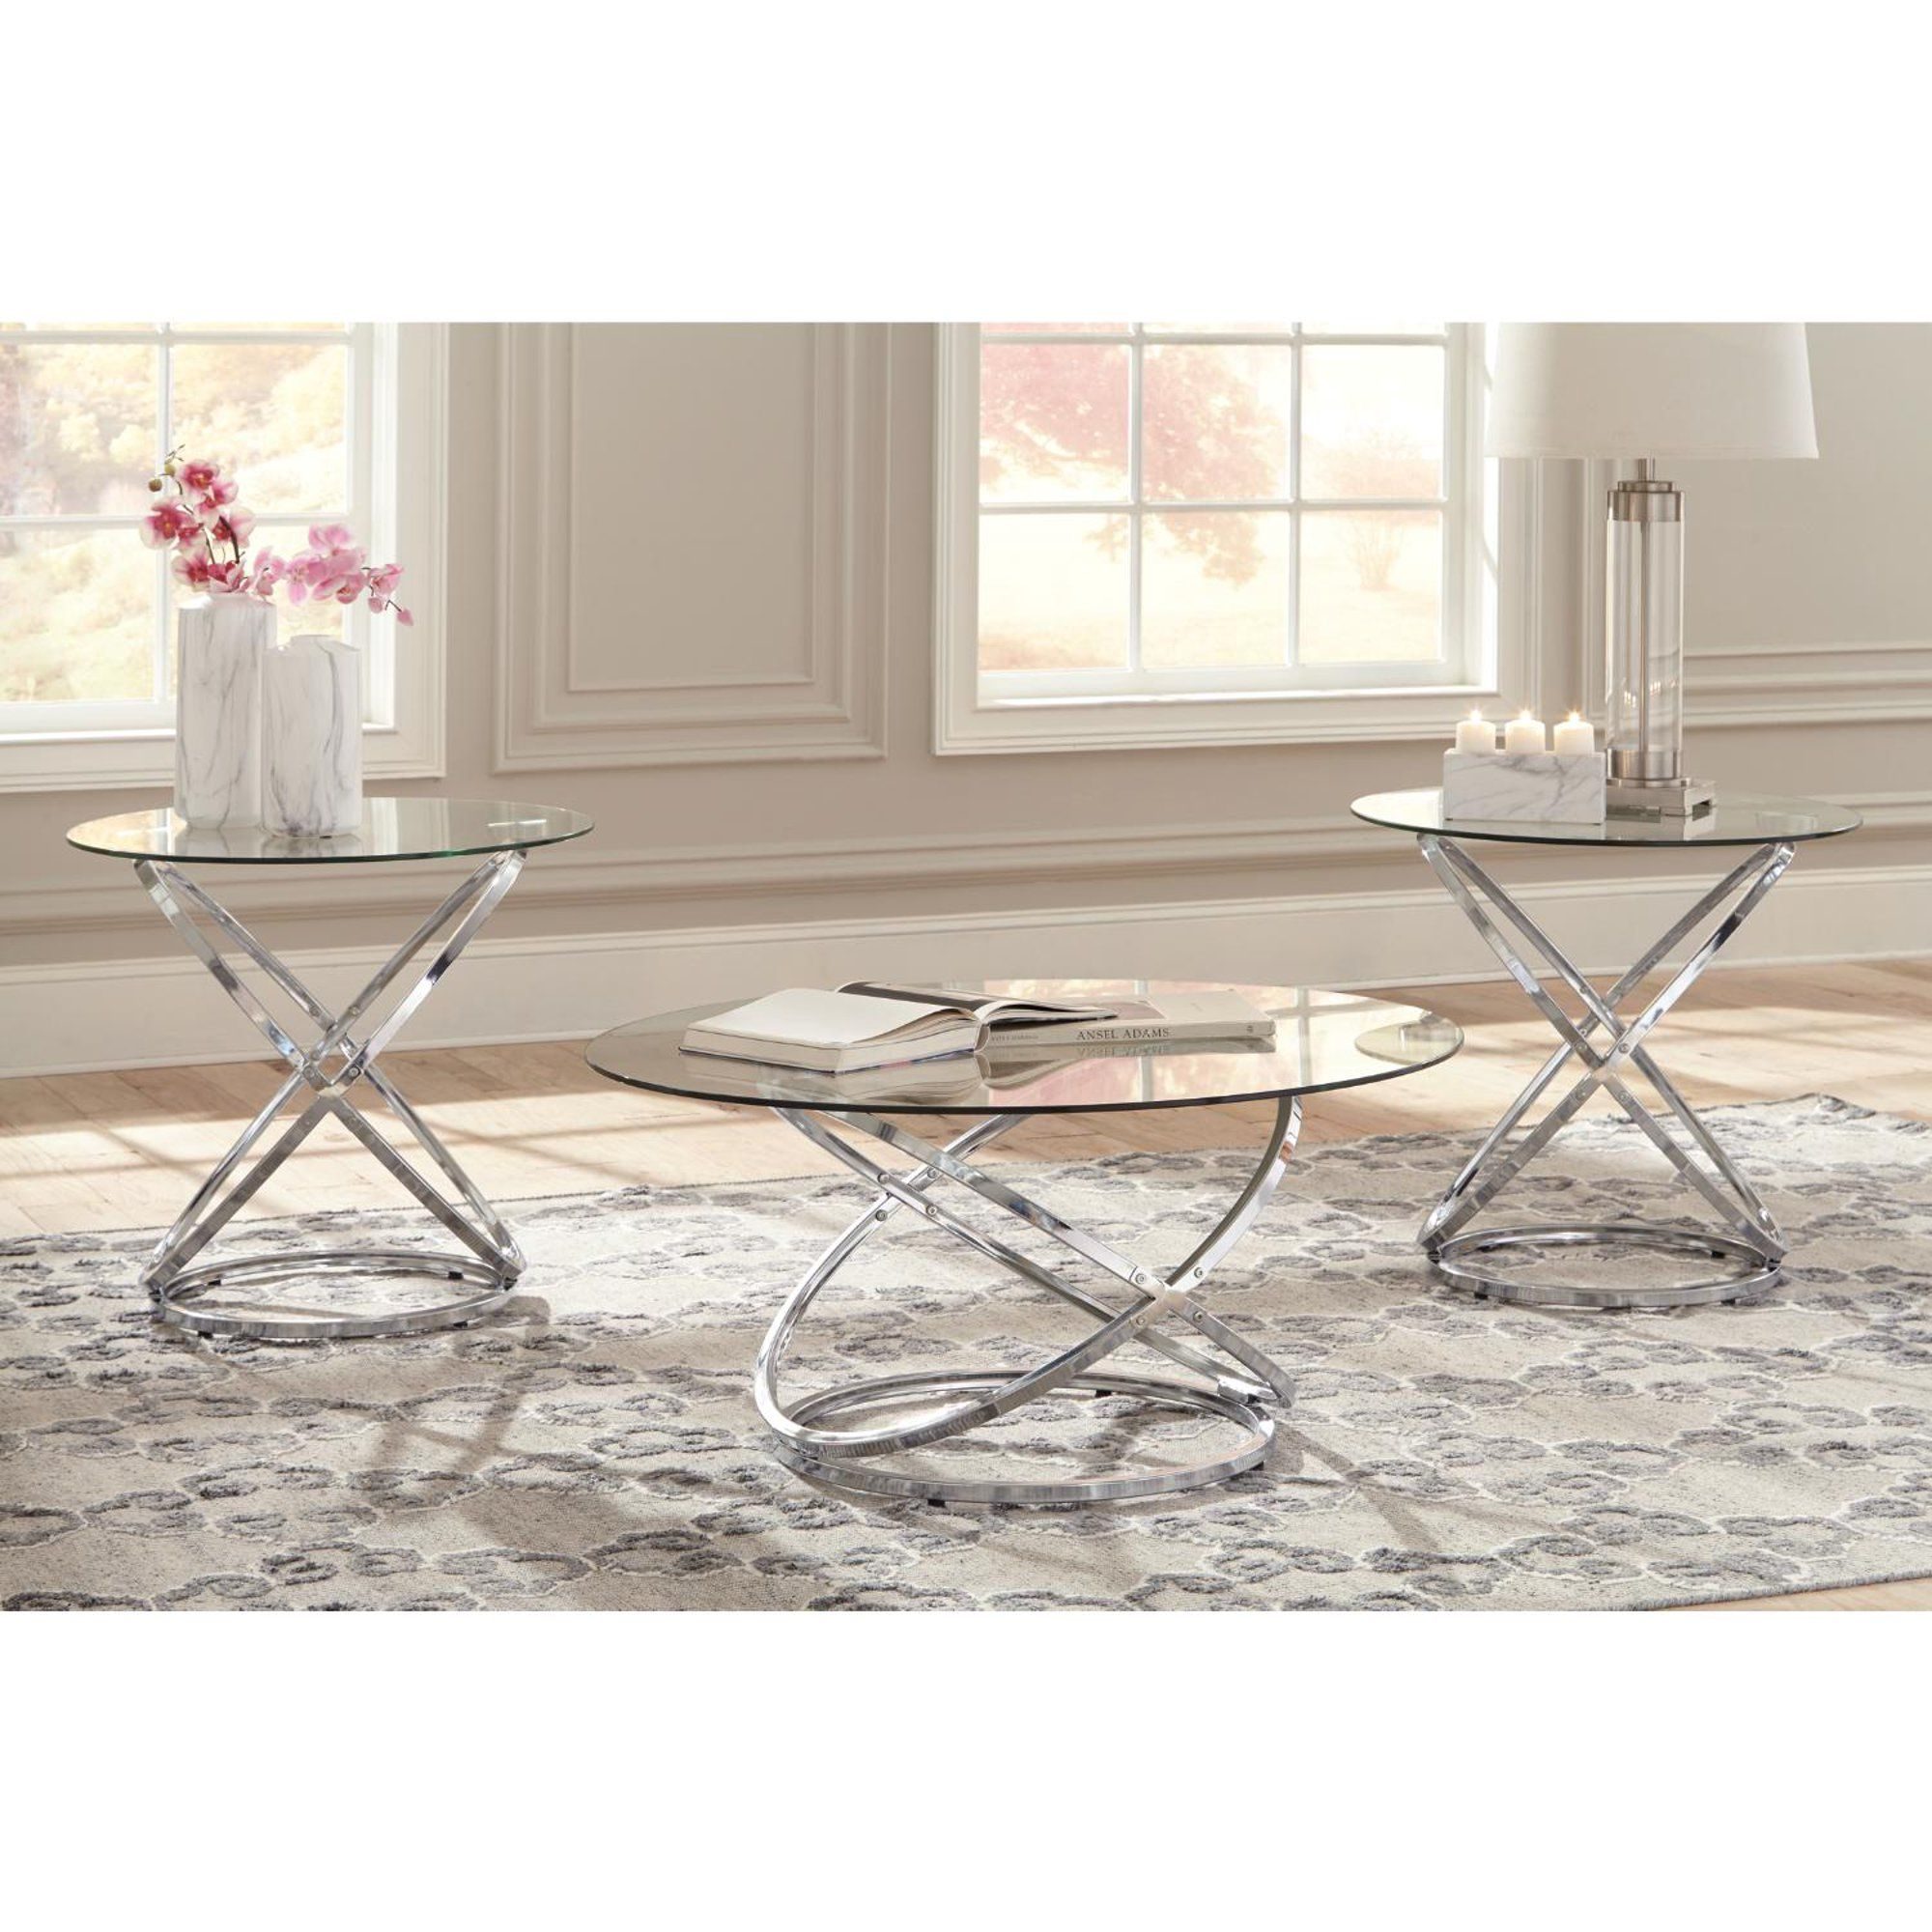 Signature Design By Ashley Hollynyx Living Room Table Set Walmart Com Living Room Table Sets Tempered Glass Table Top 3 Piece Coffee Table Set [ 2000 x 2000 Pixel ]